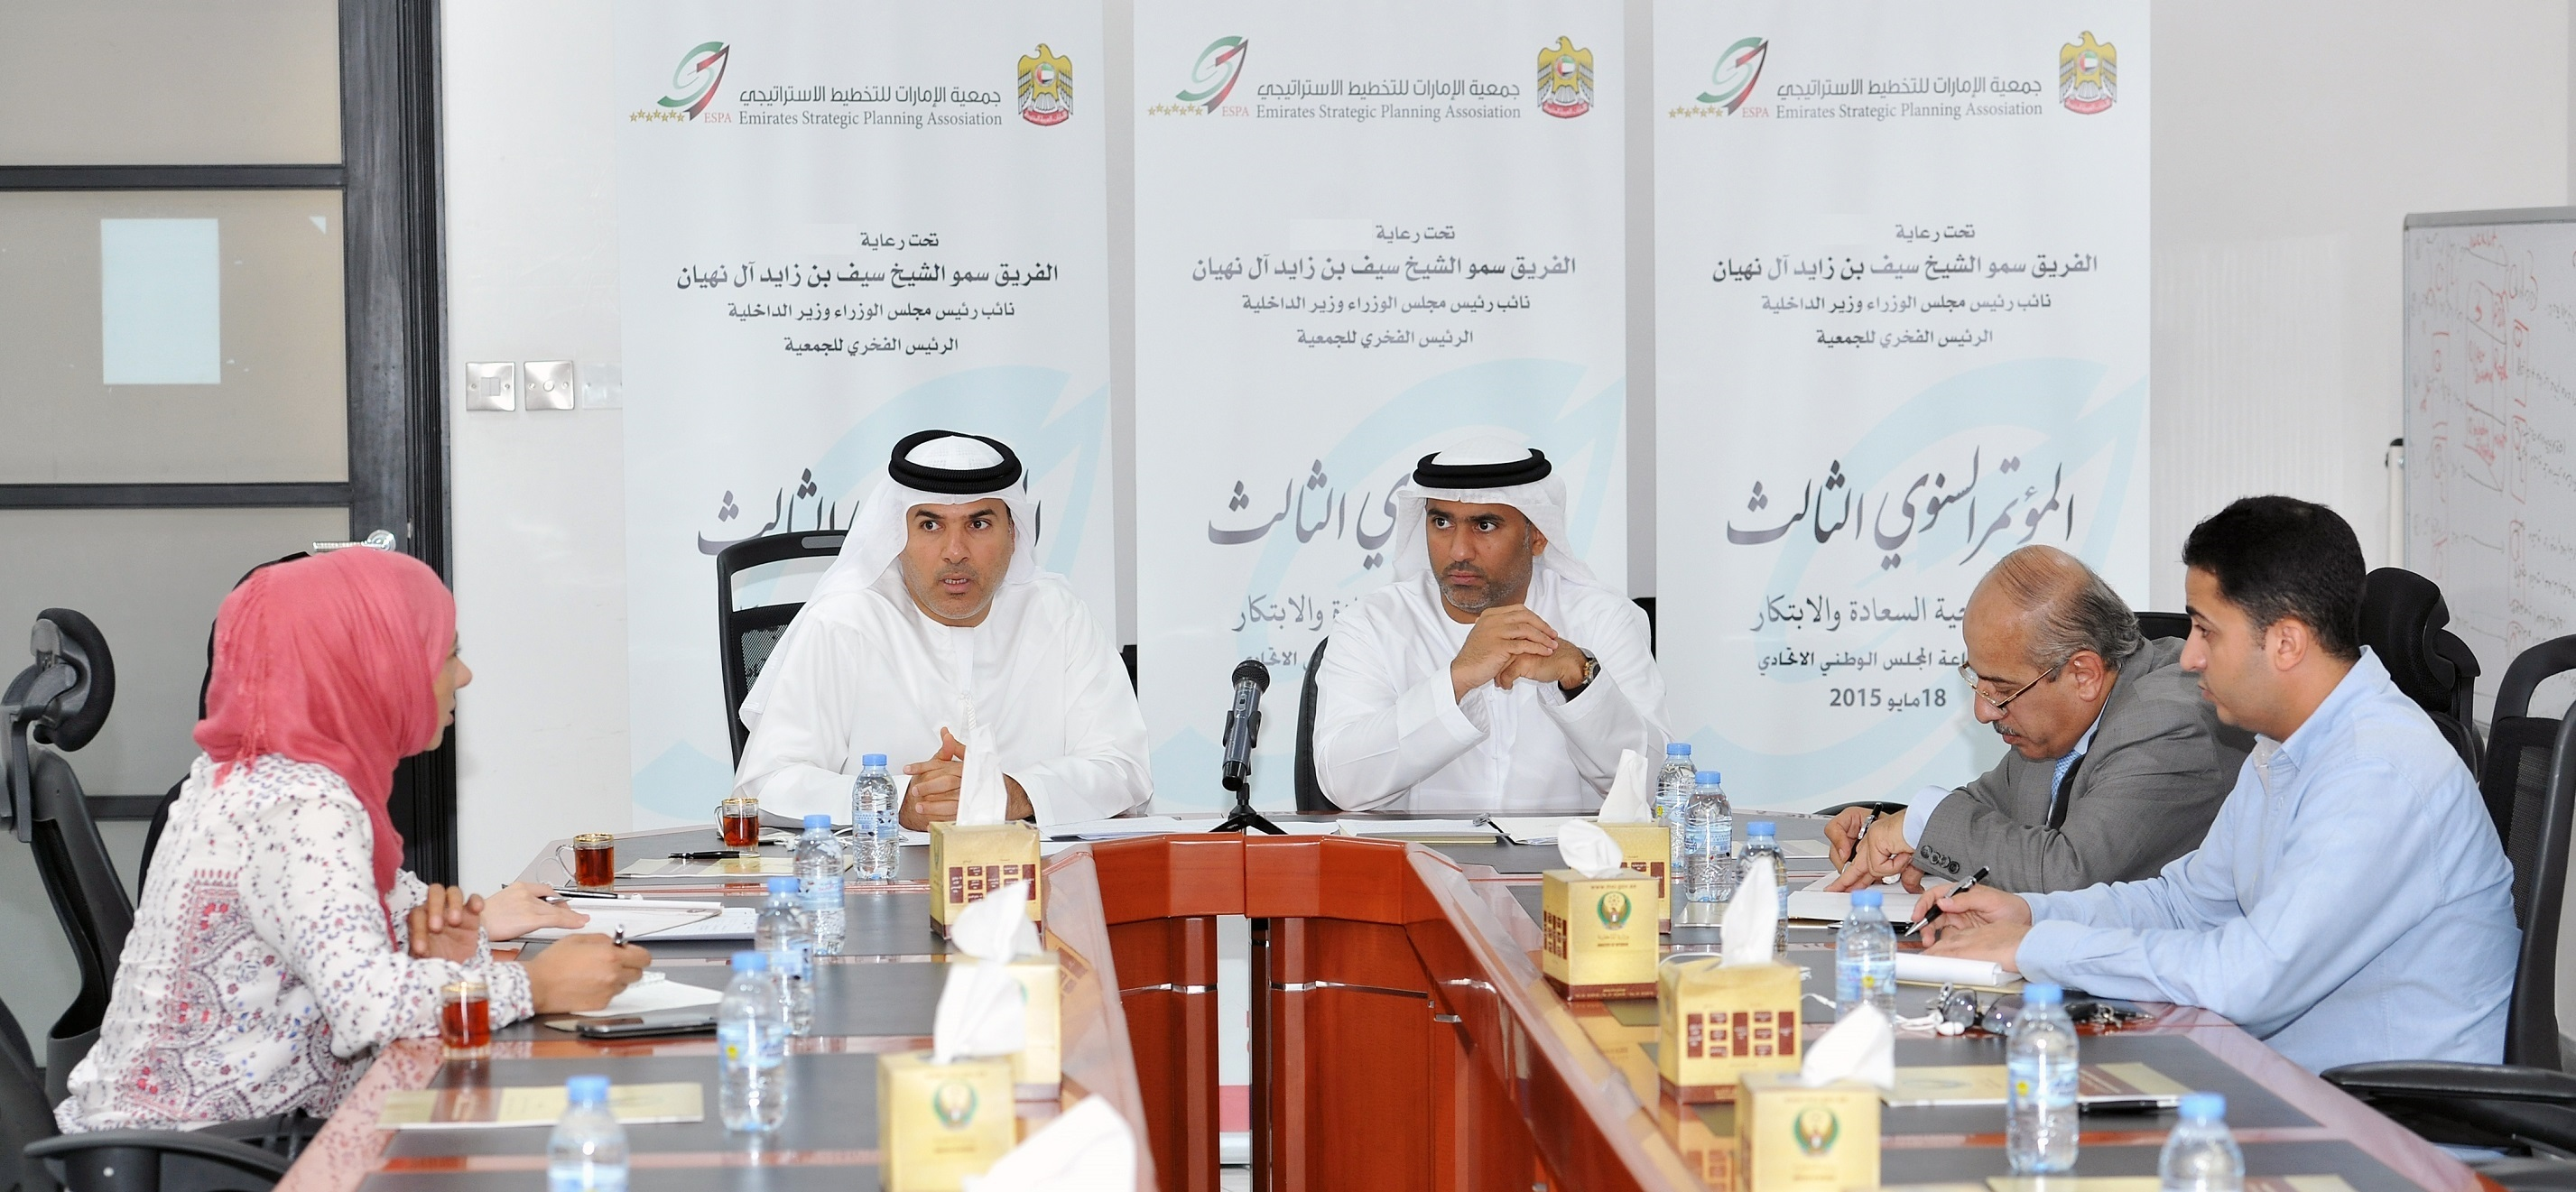 The Emirates Strategic Planning Association is organizing the Third Annual Conference.